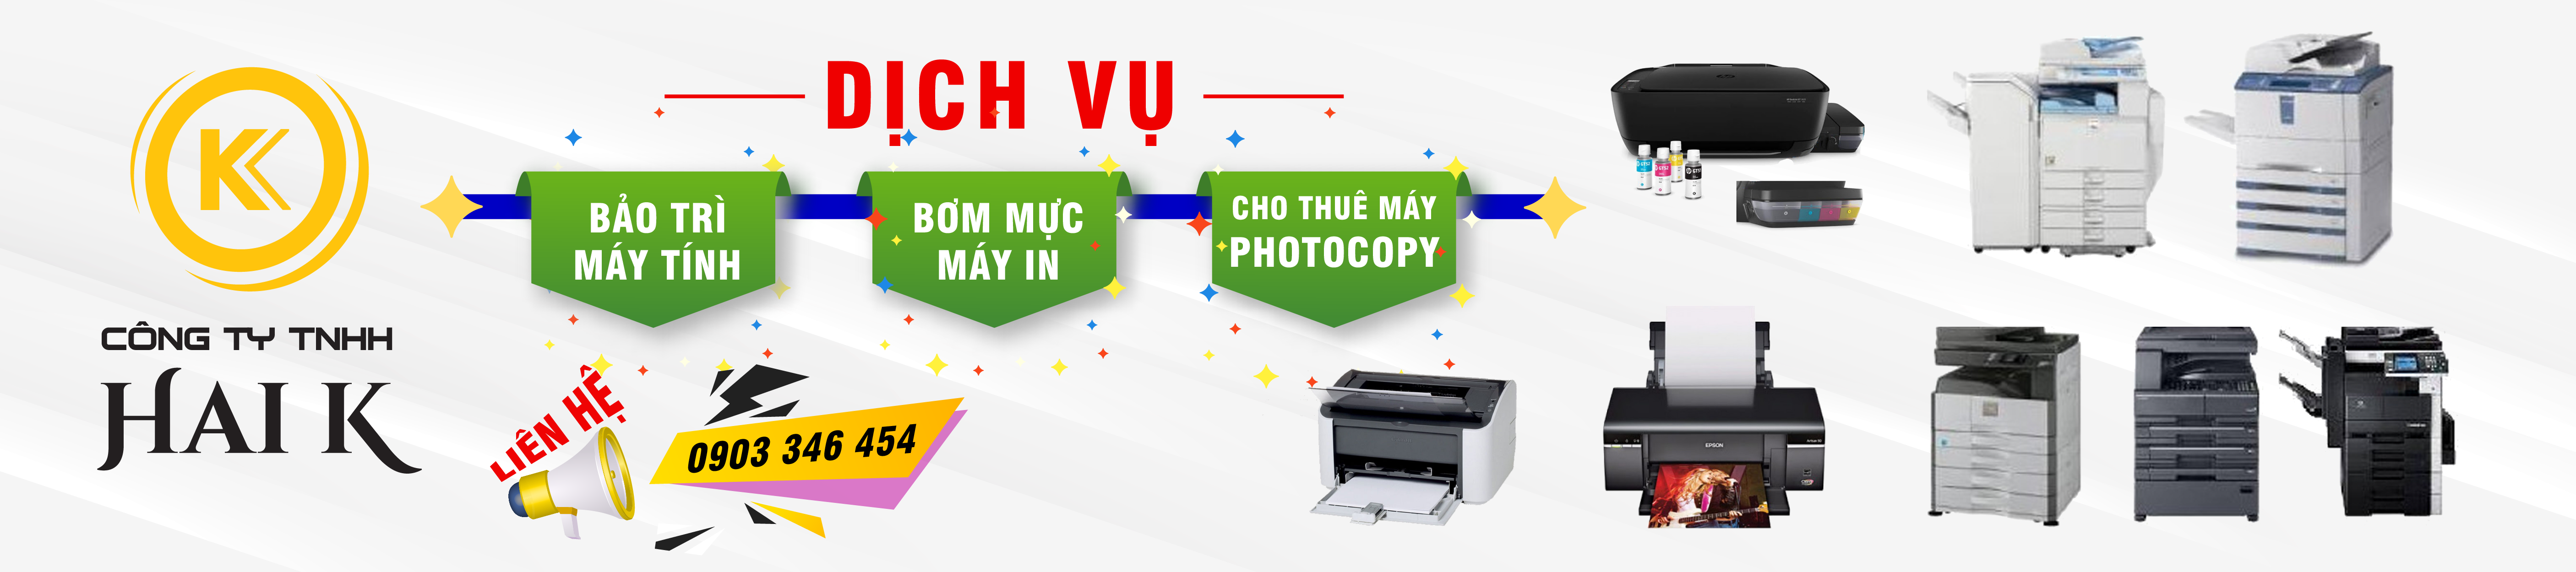 GIẤY IN - PHOTOCOPY